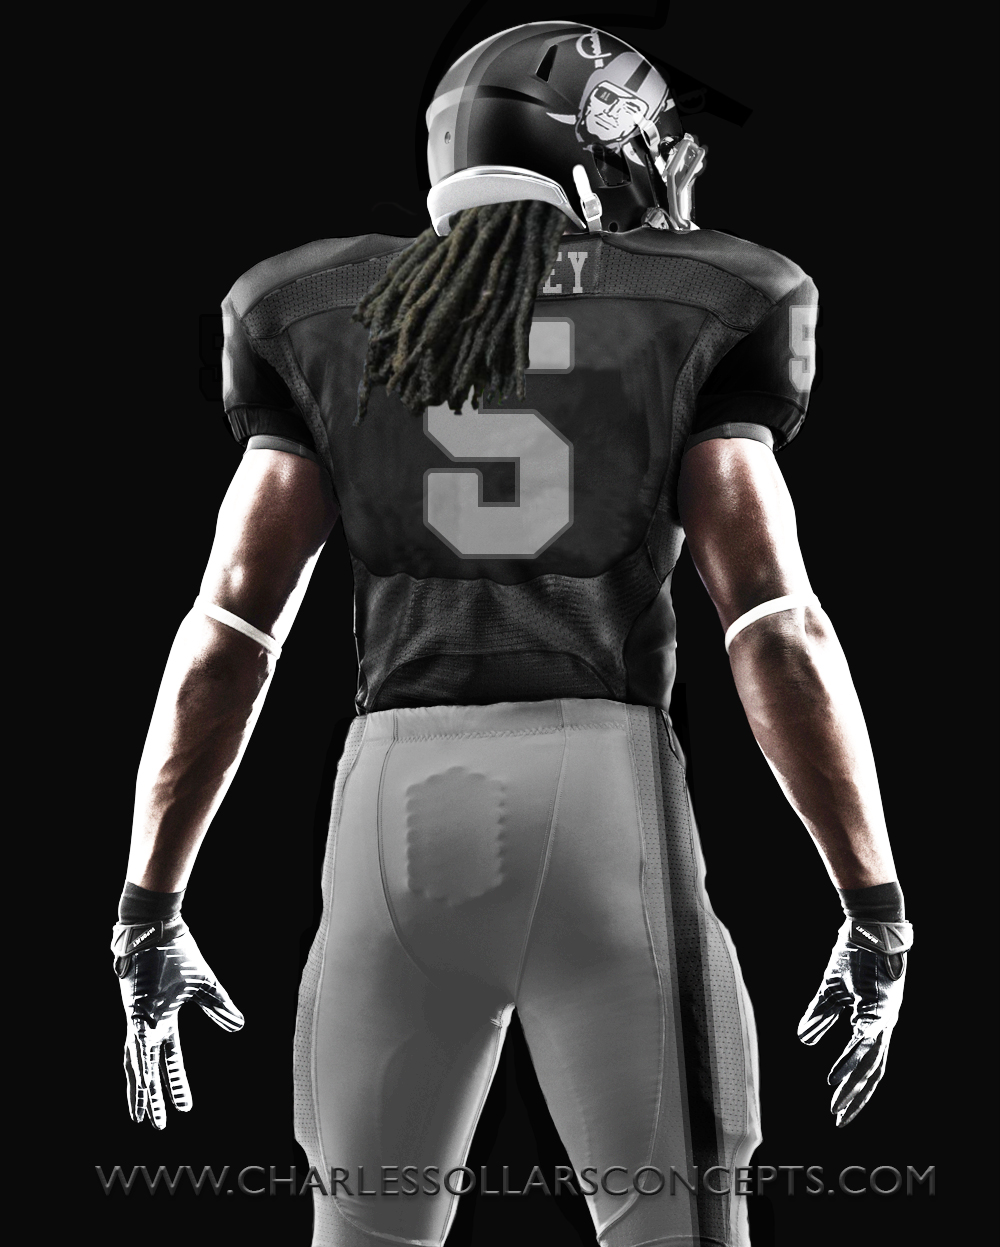 Oakland Raiders Uniforms Pictures To Pin On Pinterest